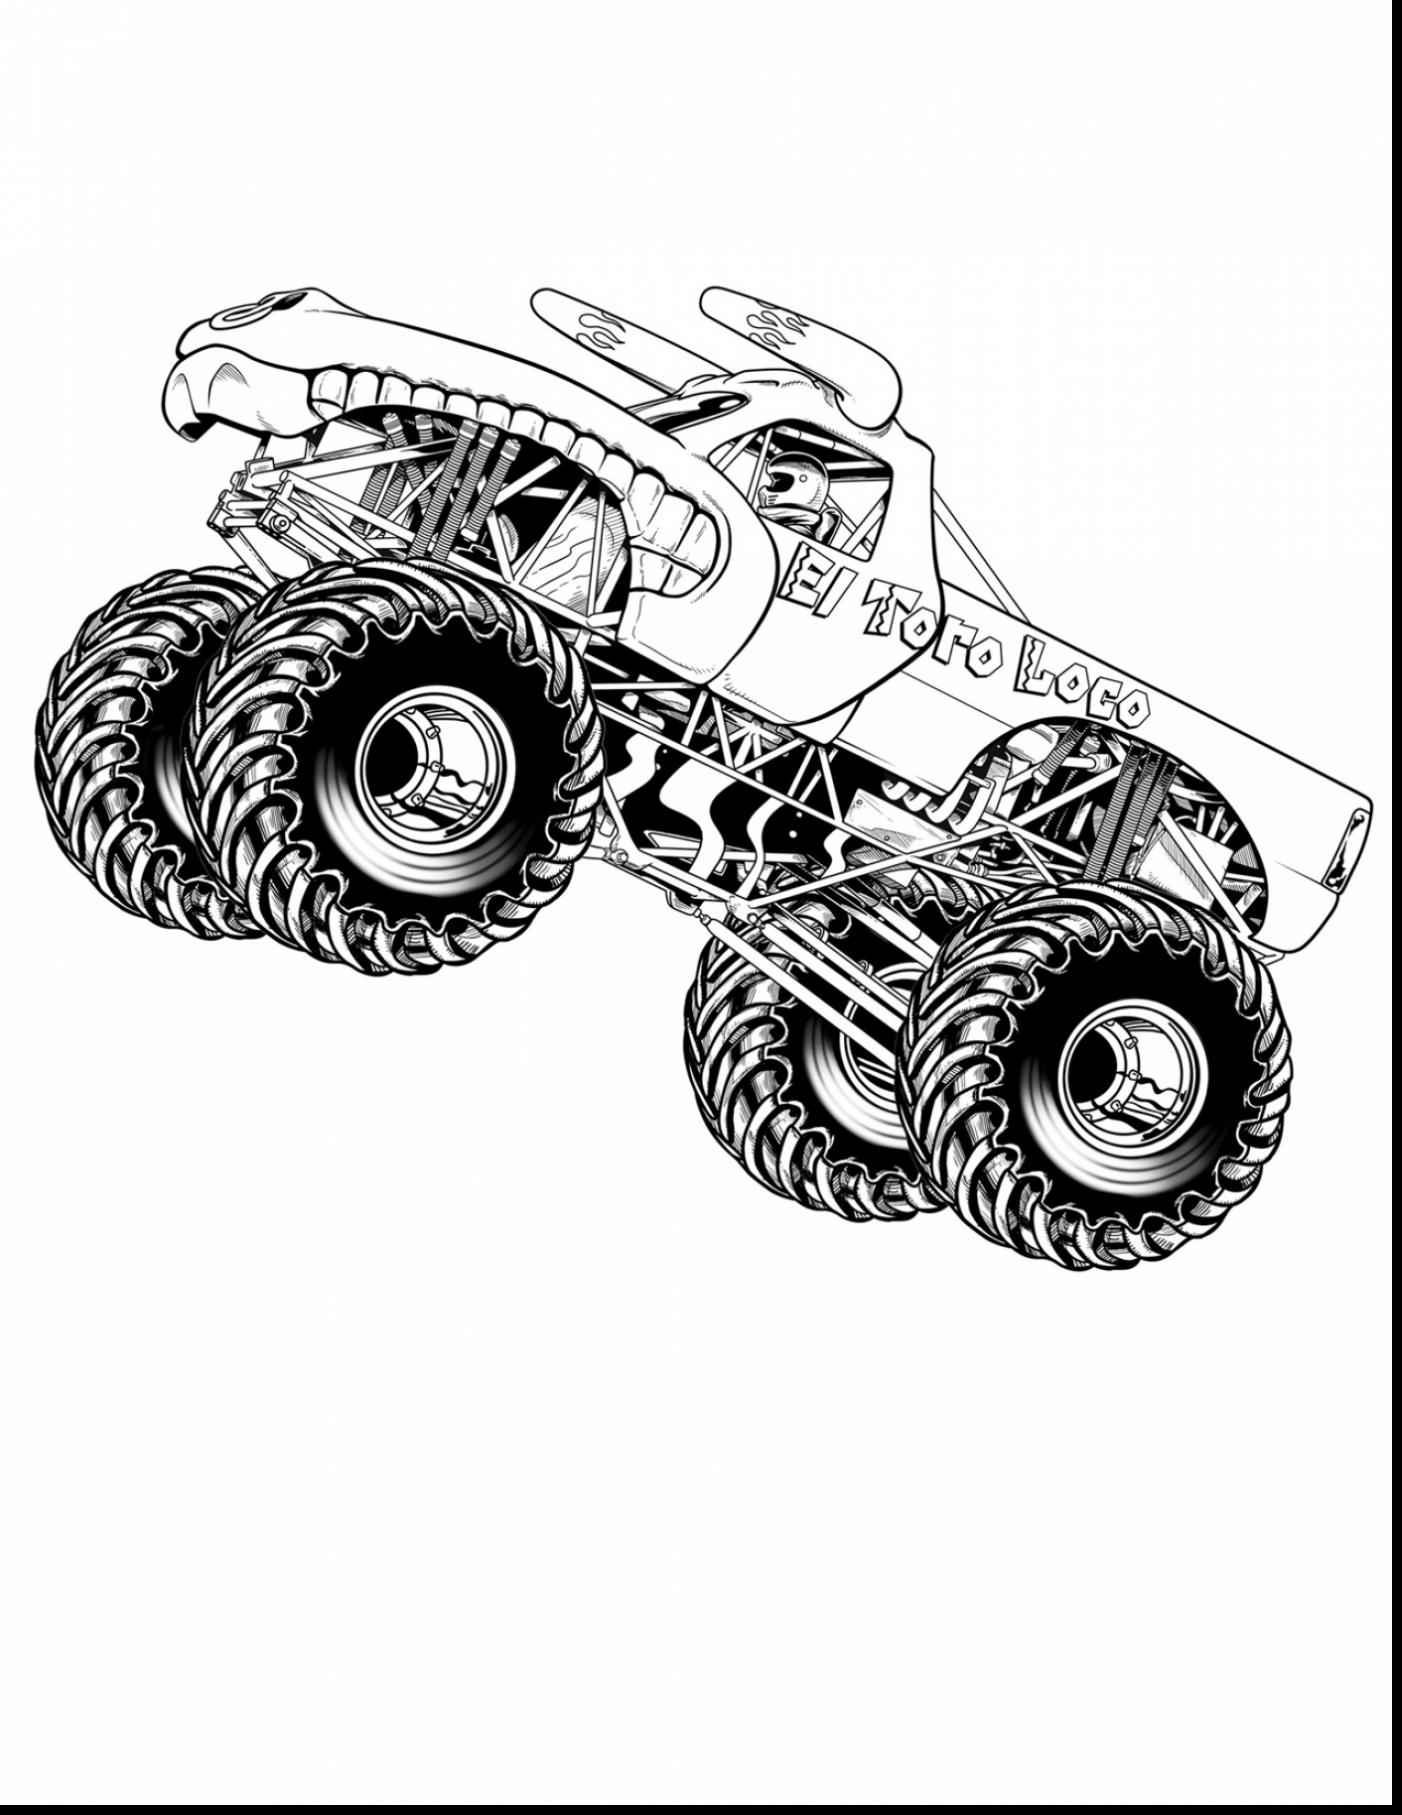 grave digger coloring page grave digger monster truck vectors png download page digger grave coloring